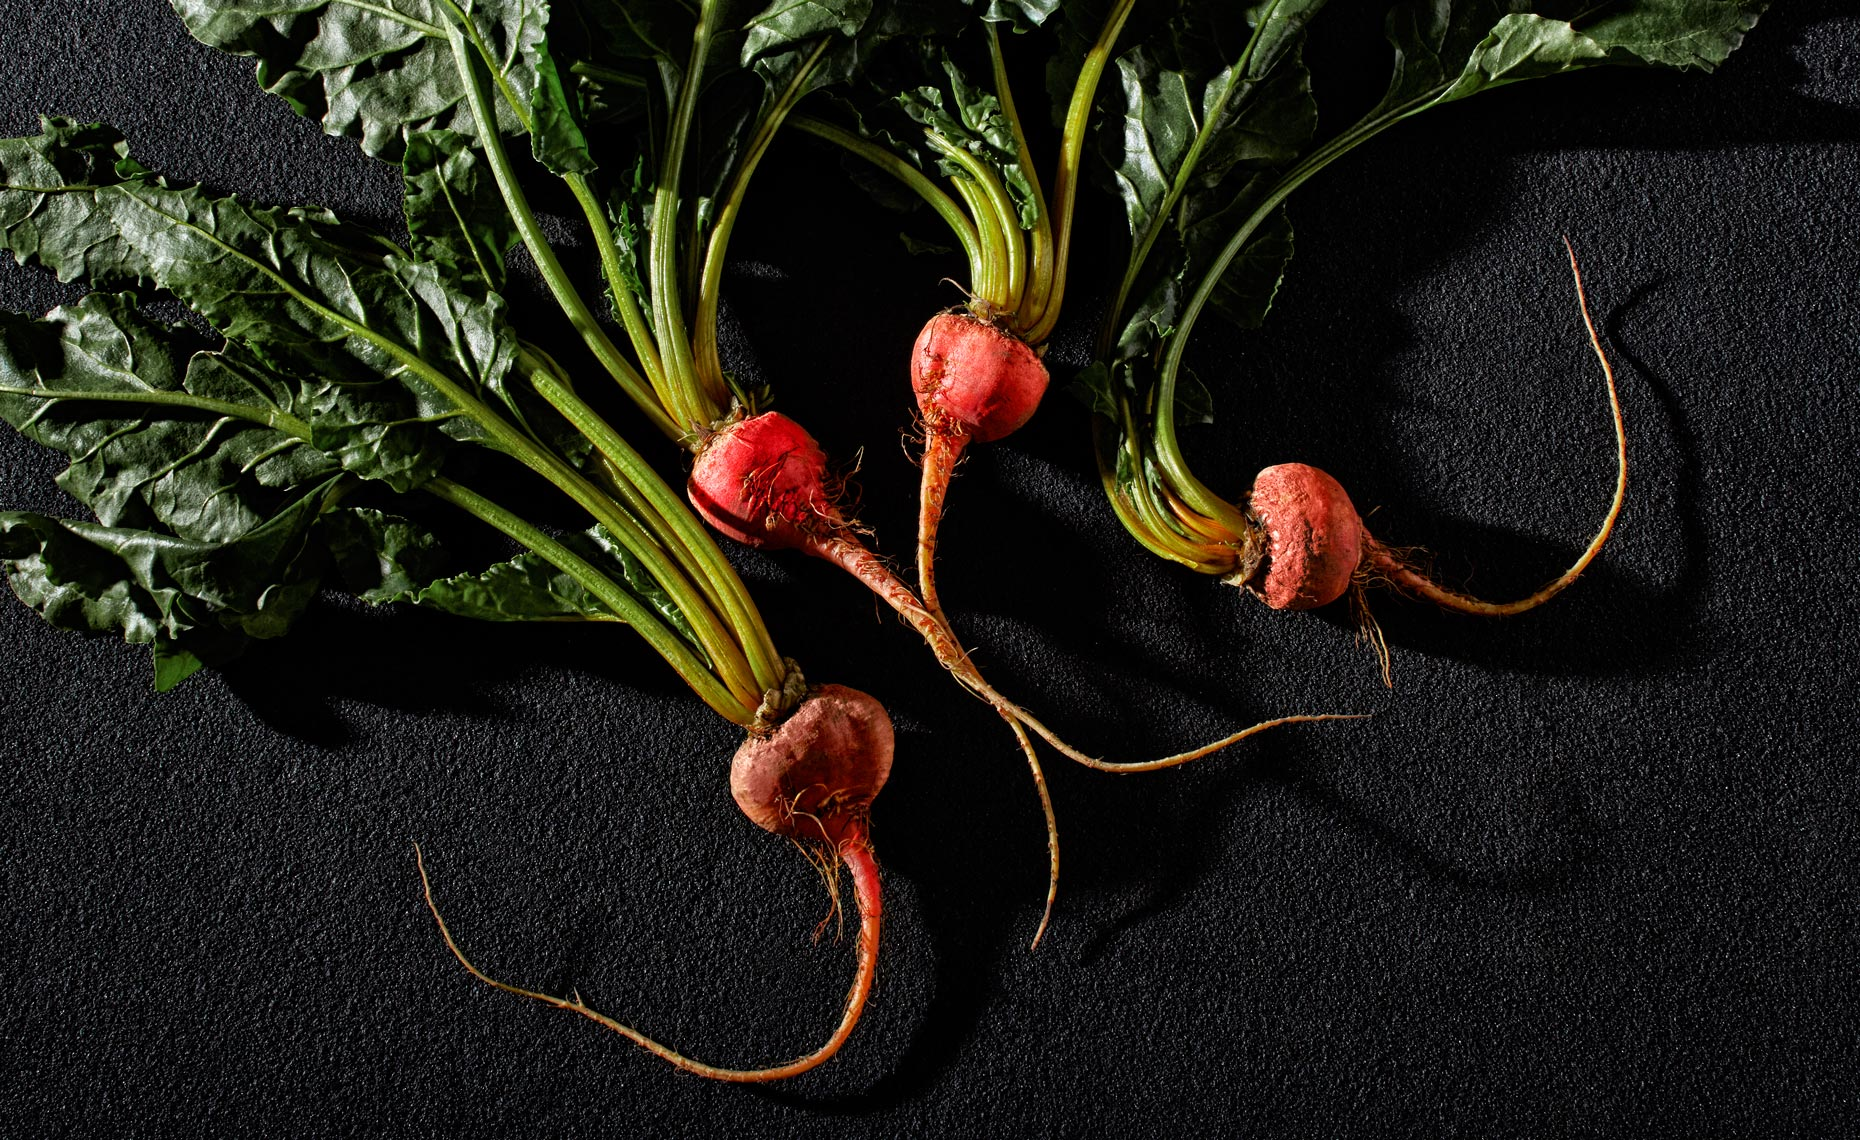 Fresh Produce Photography © Sasha Gitin